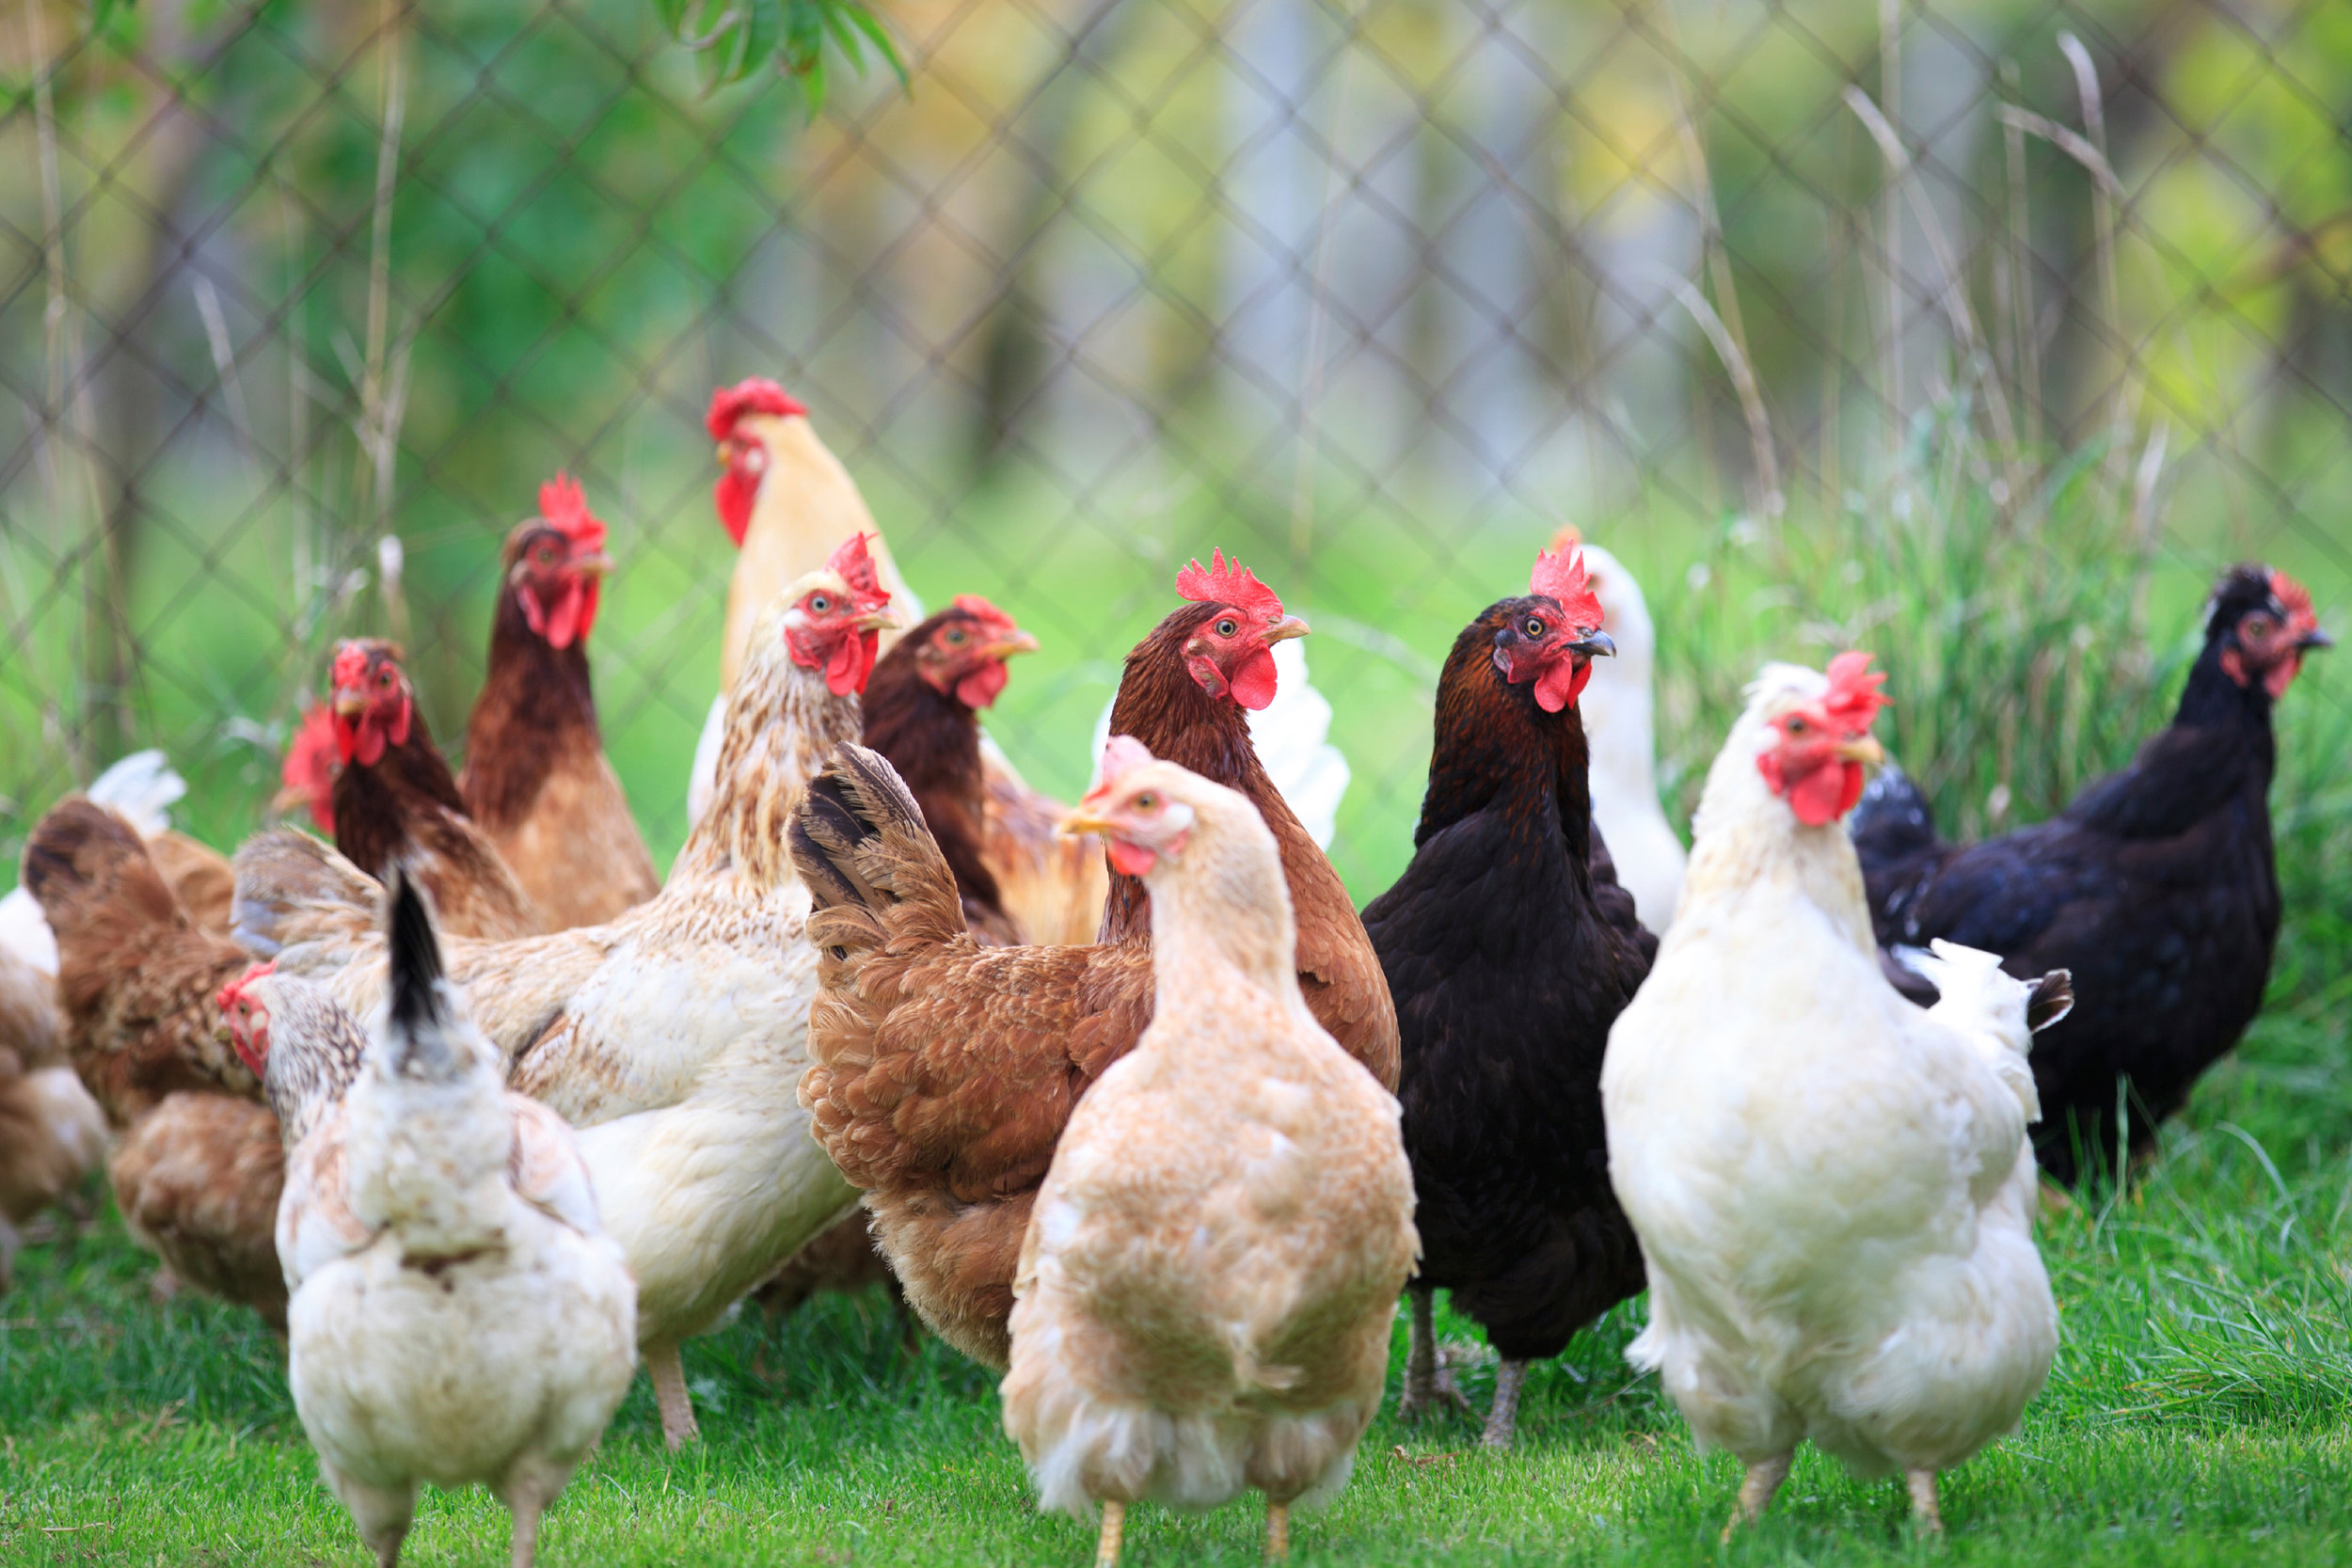 SquarespaceImage19-poultry-maturechickens.jpg